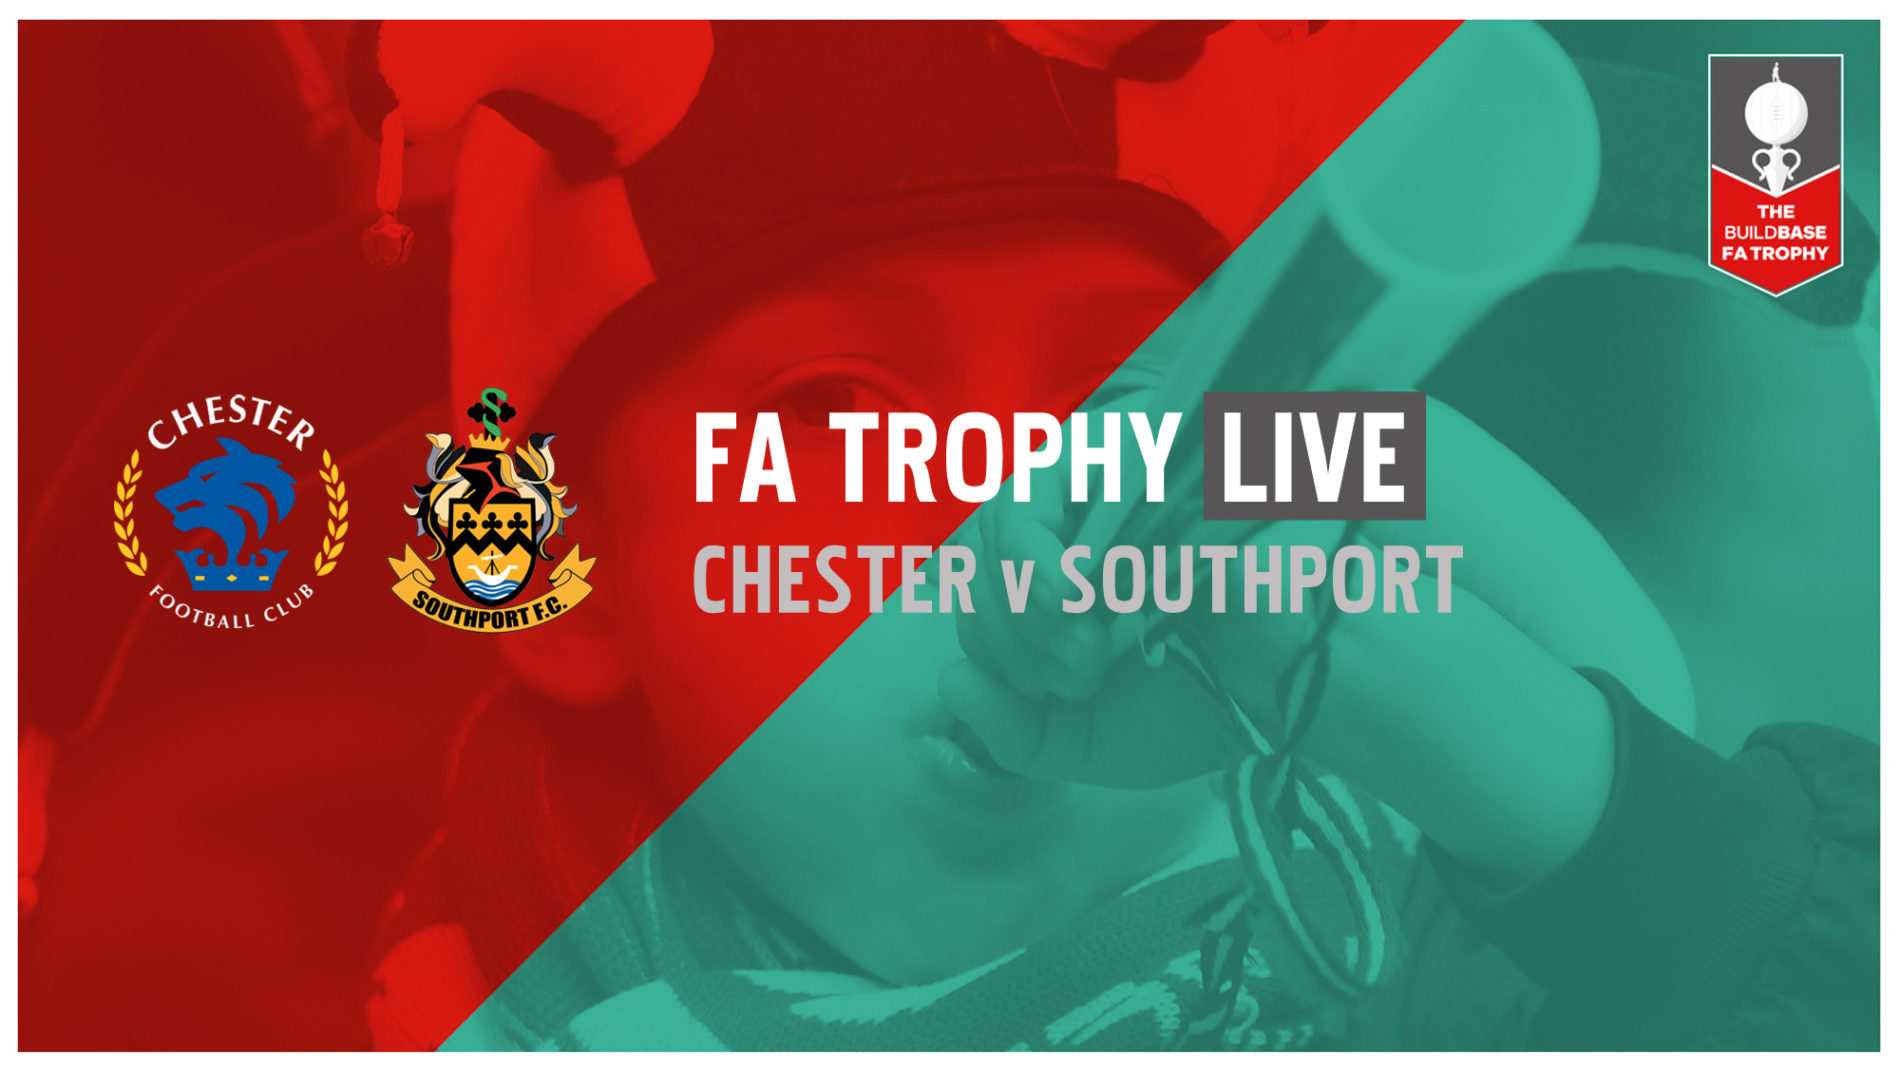 FA TROPHY LIVE | Chester v Southport